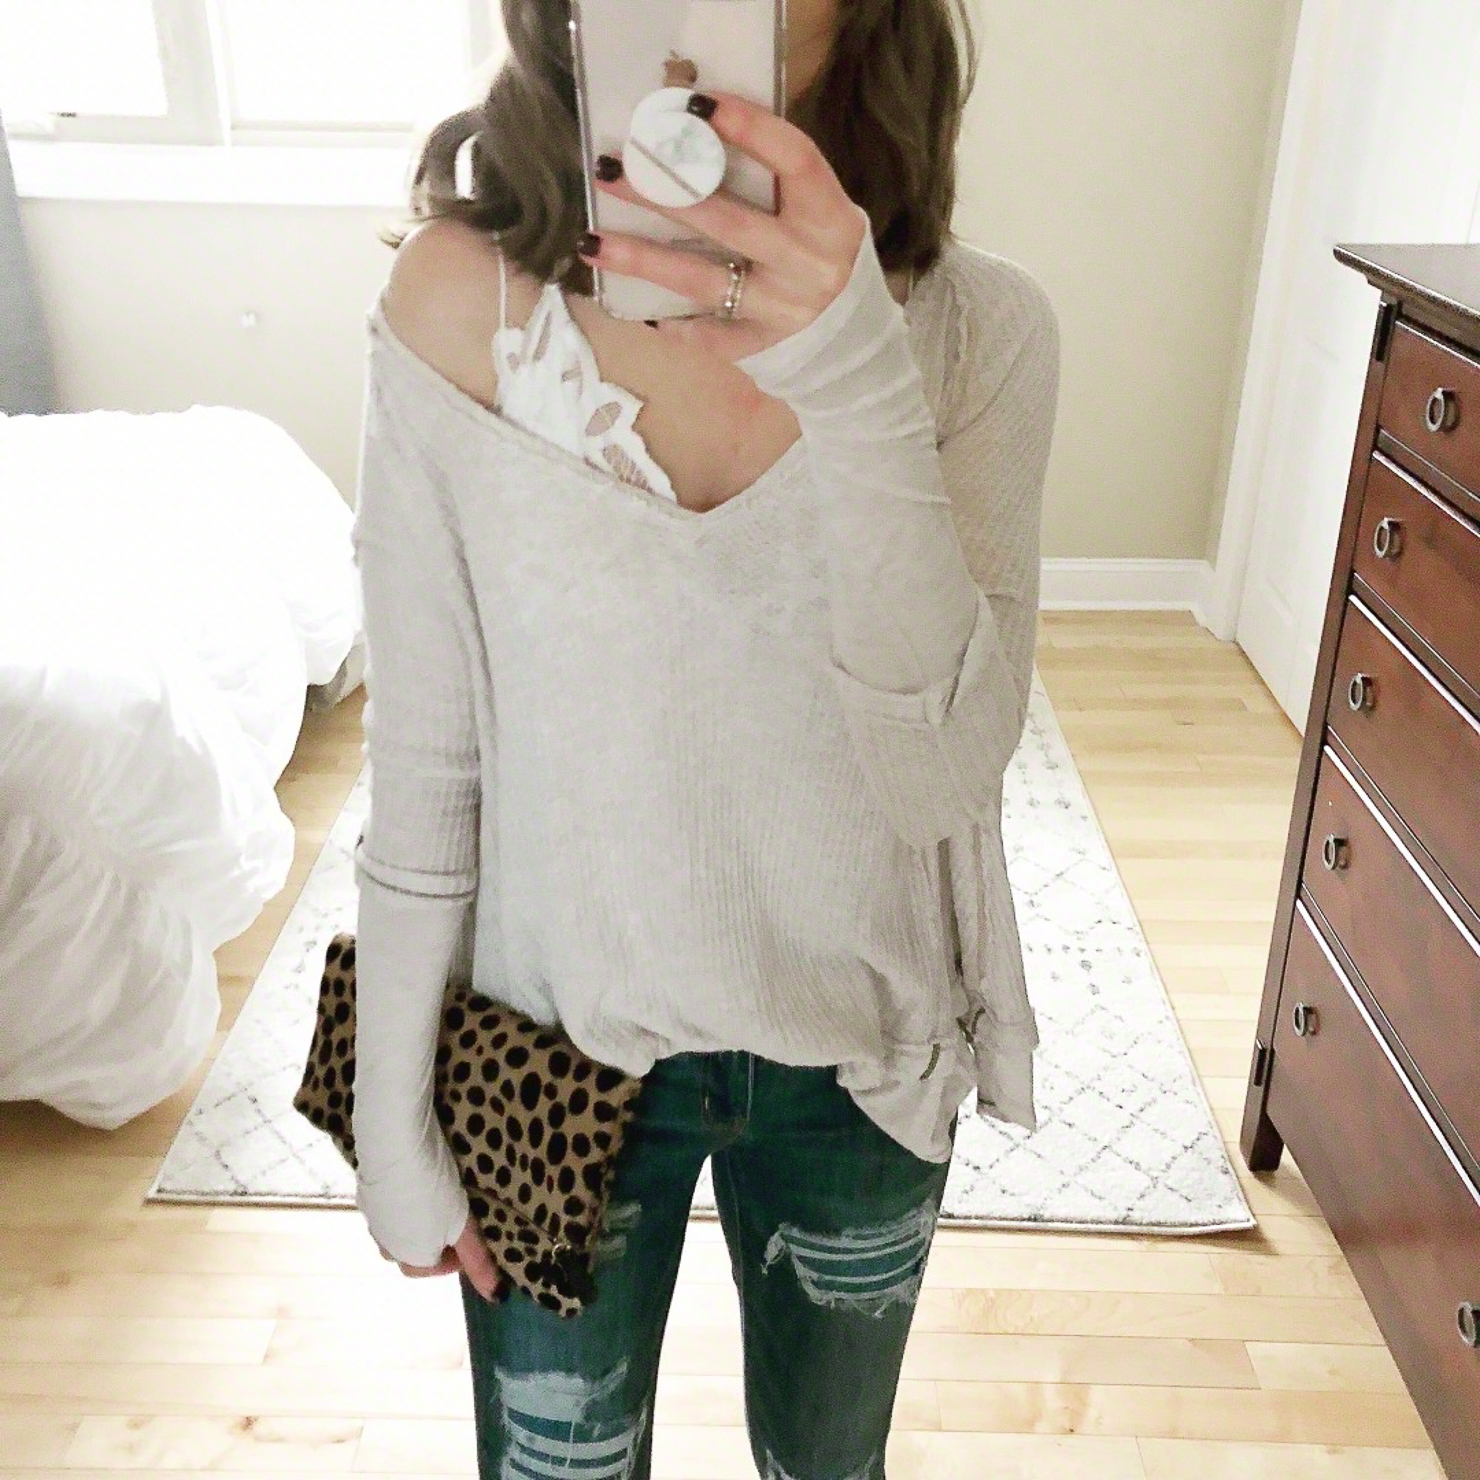 Outfits for Transitional Spring Weather, free-people-laguna-top-with-lace-bralette-leopard-clutch